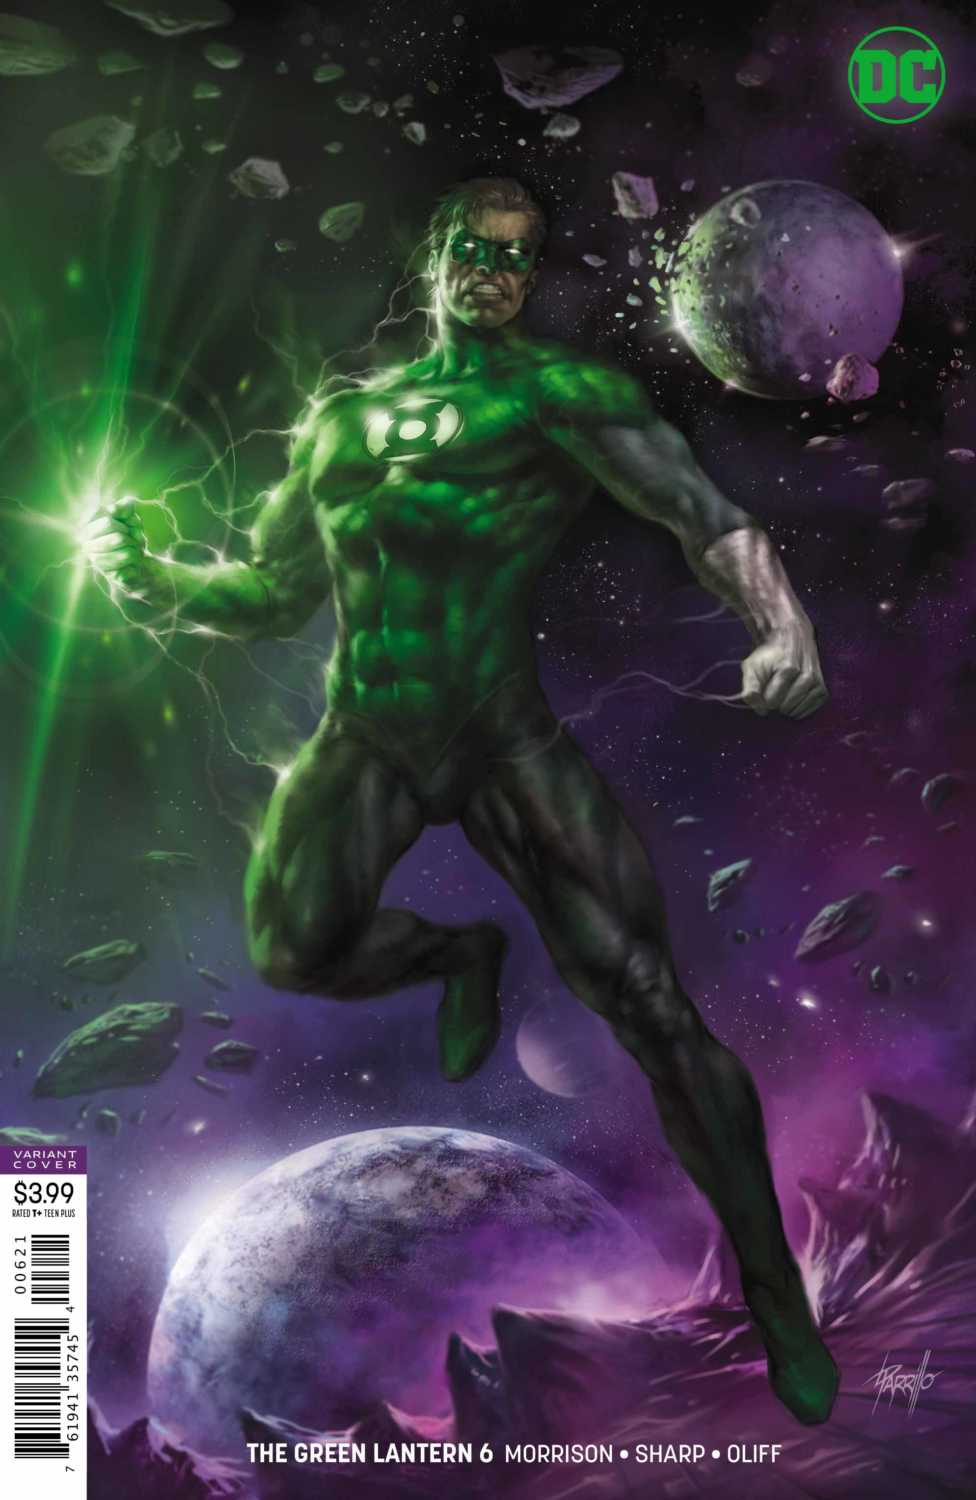 THE GREEN LANTERN #6 variant cover